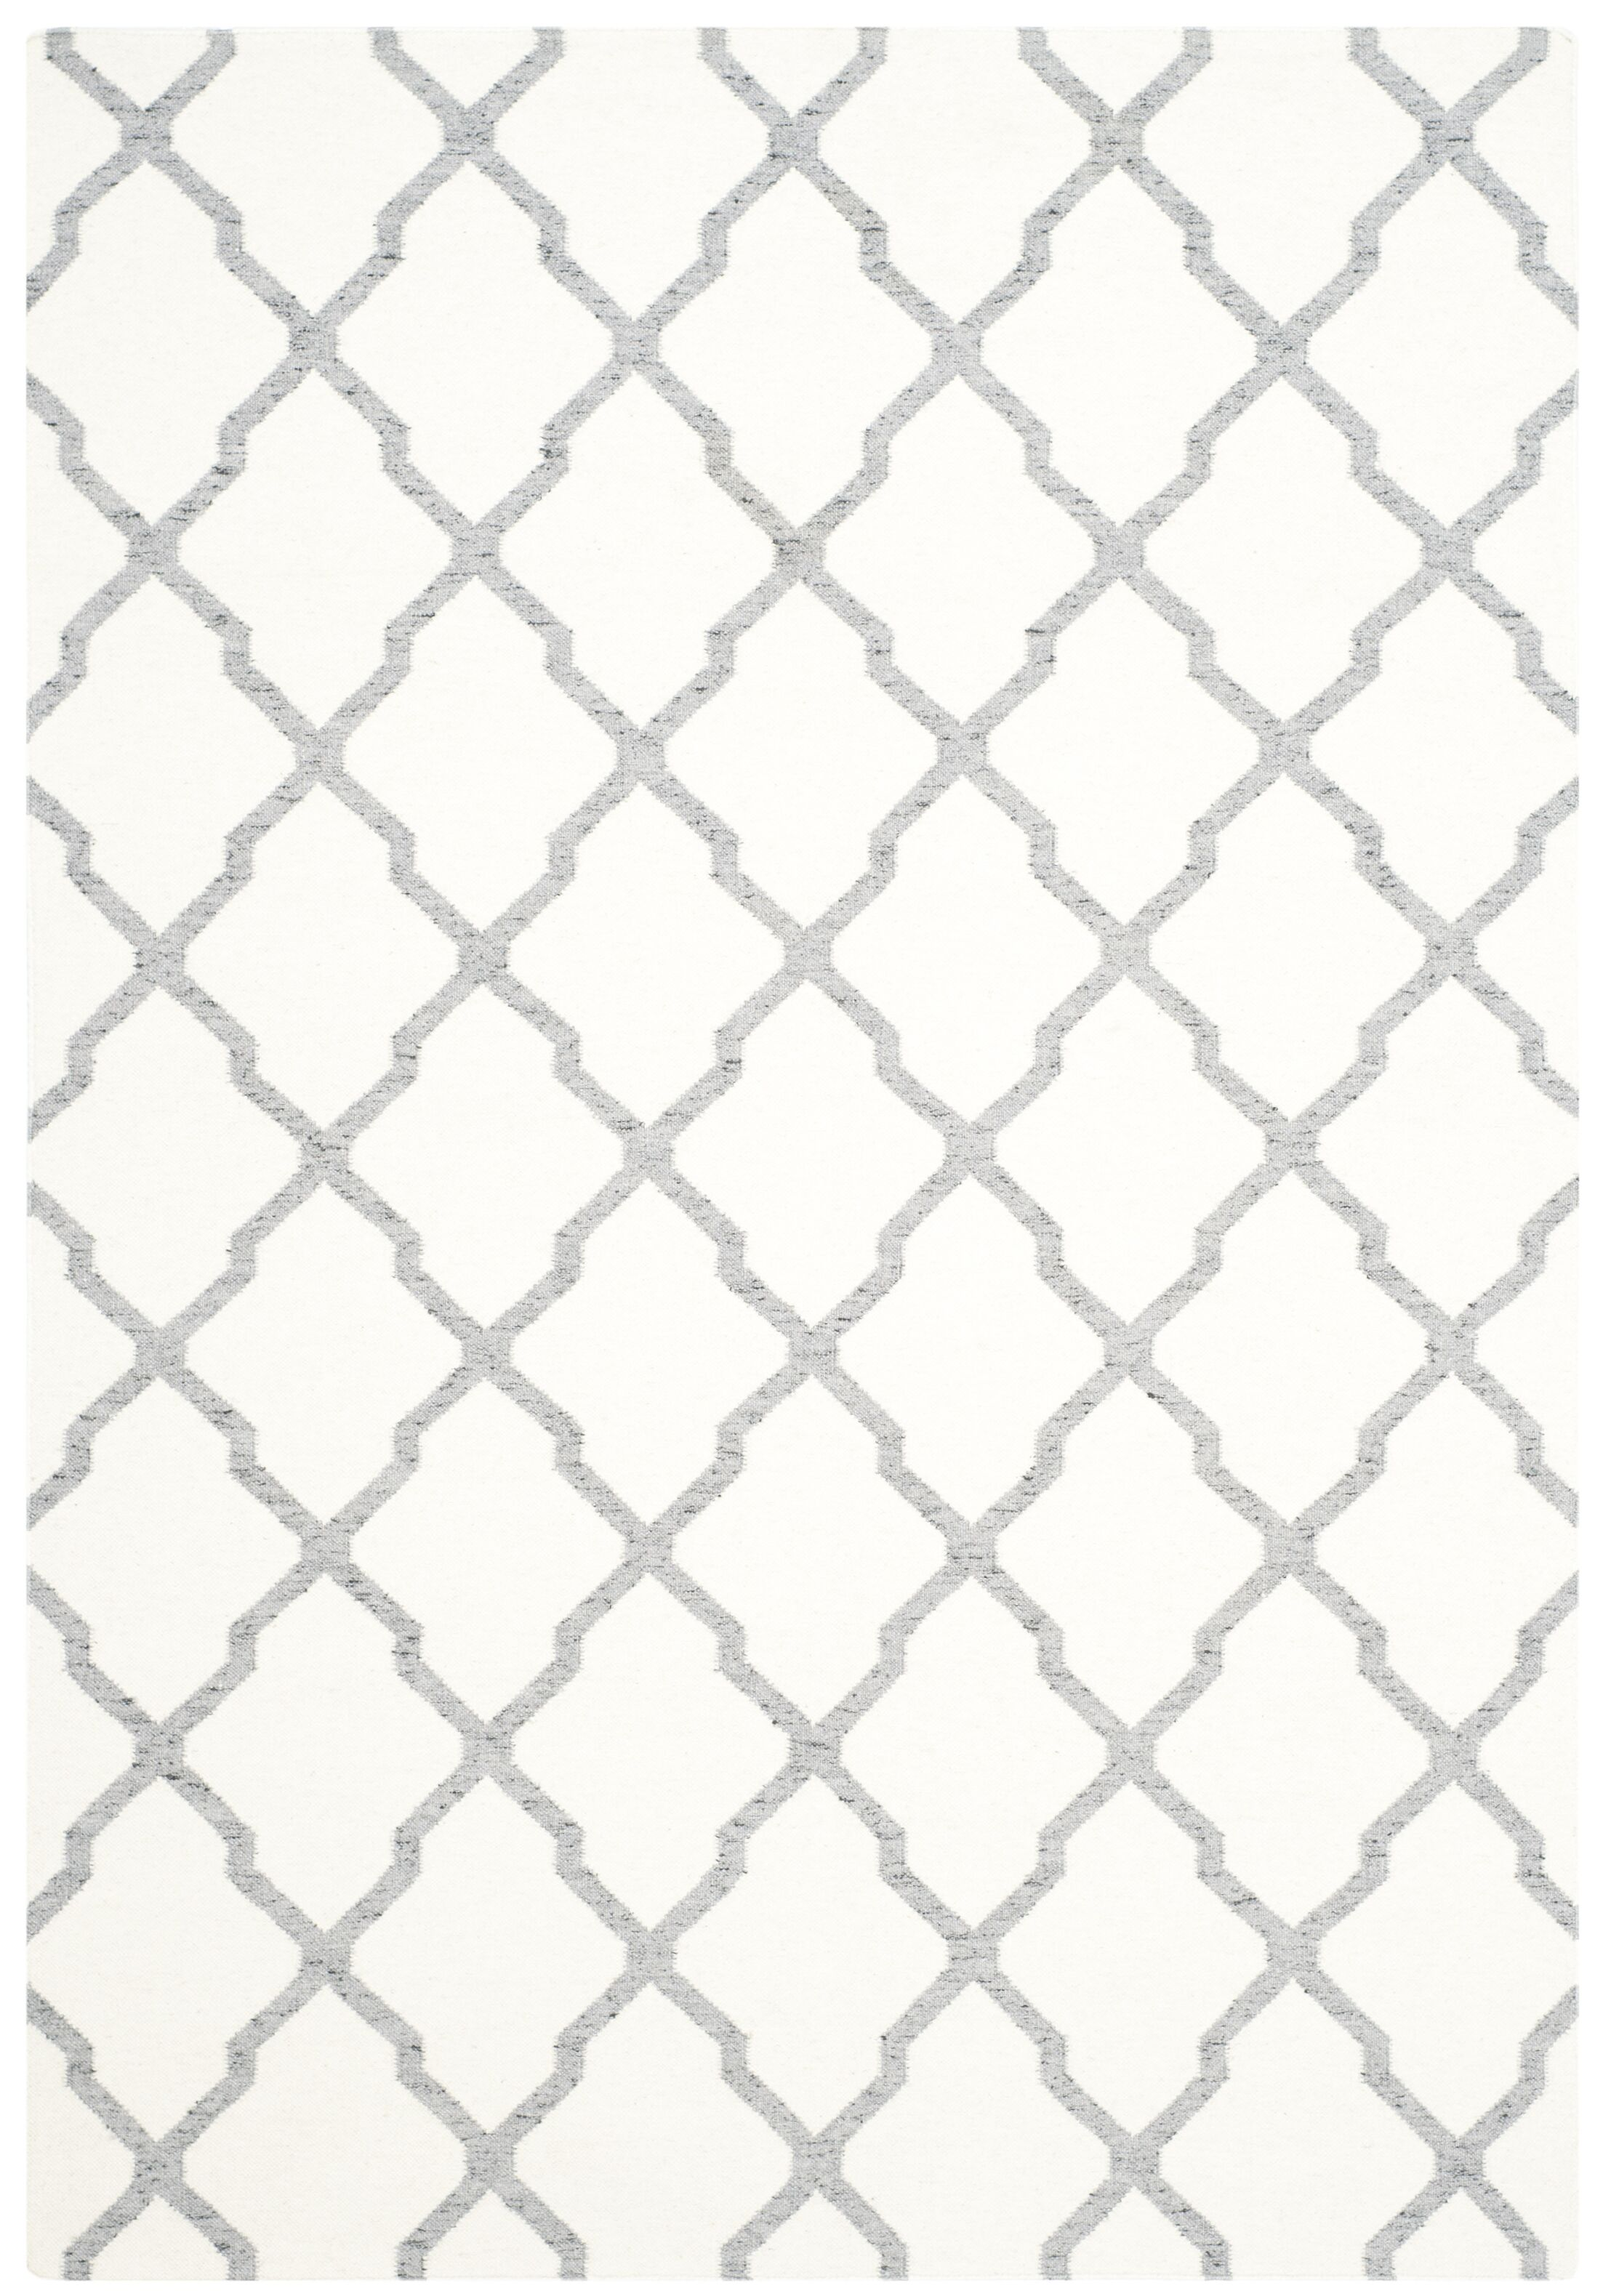 Dhurries Hand Woven Wool Ivory/Grey Area Rug Rug Size: Rectangle 8' x 10'